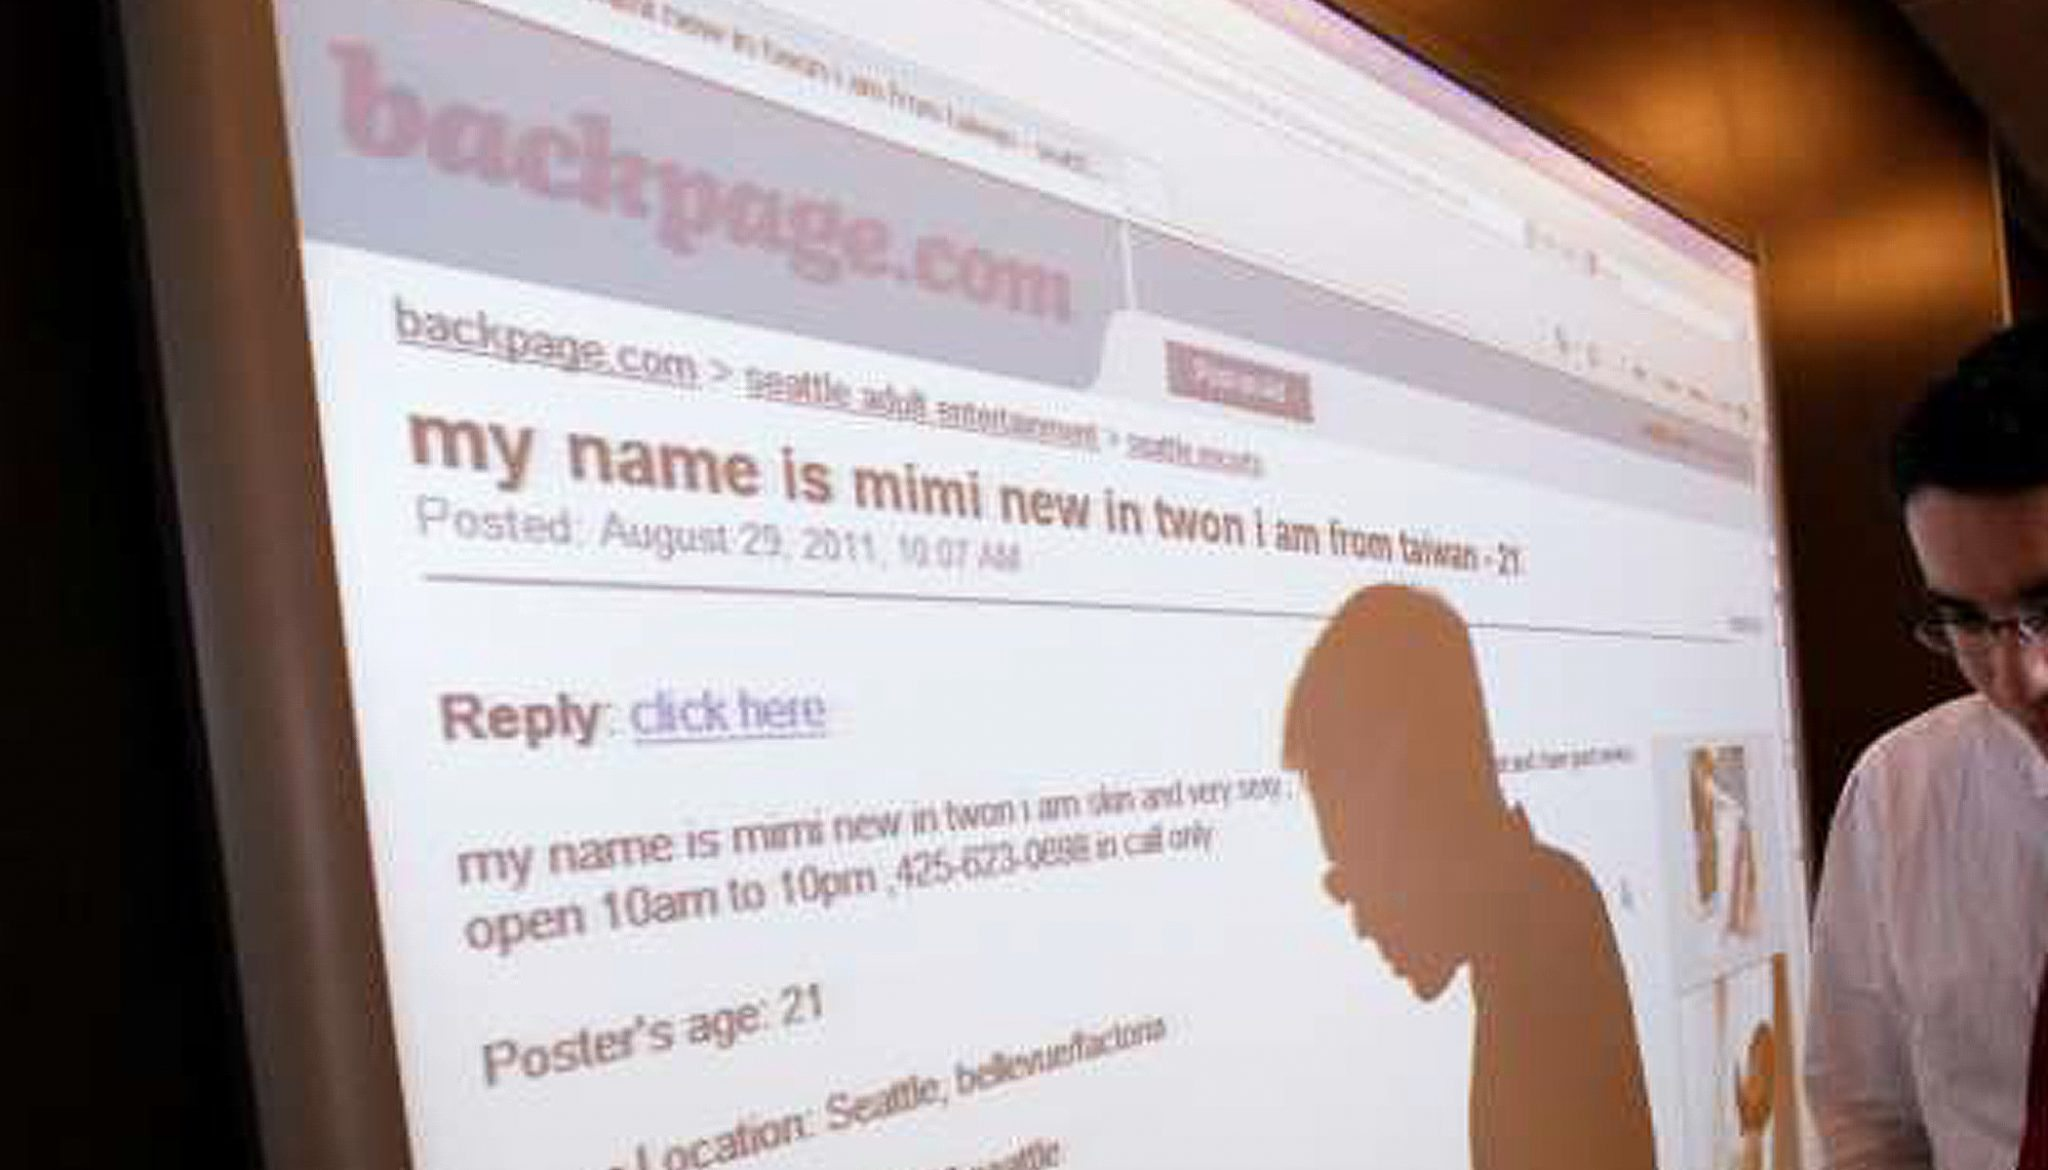 Breaking News: Backpage.com CEO Arrested On Felony Pimping Charges